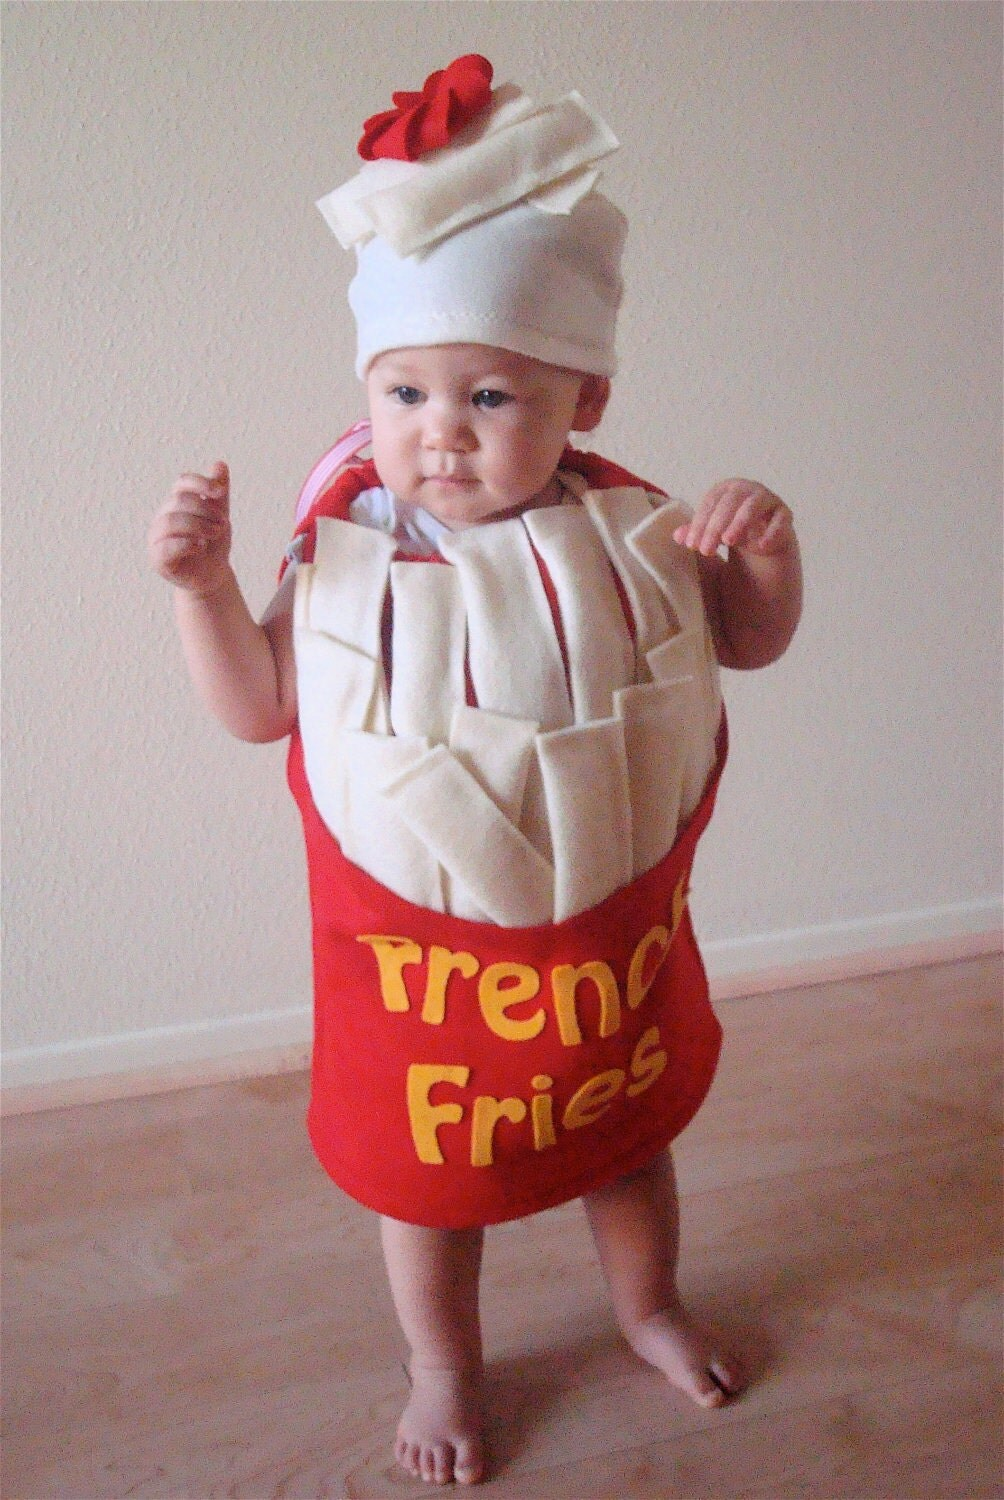 Baby French Fry Costume Infant Newborn Toddler Halloween